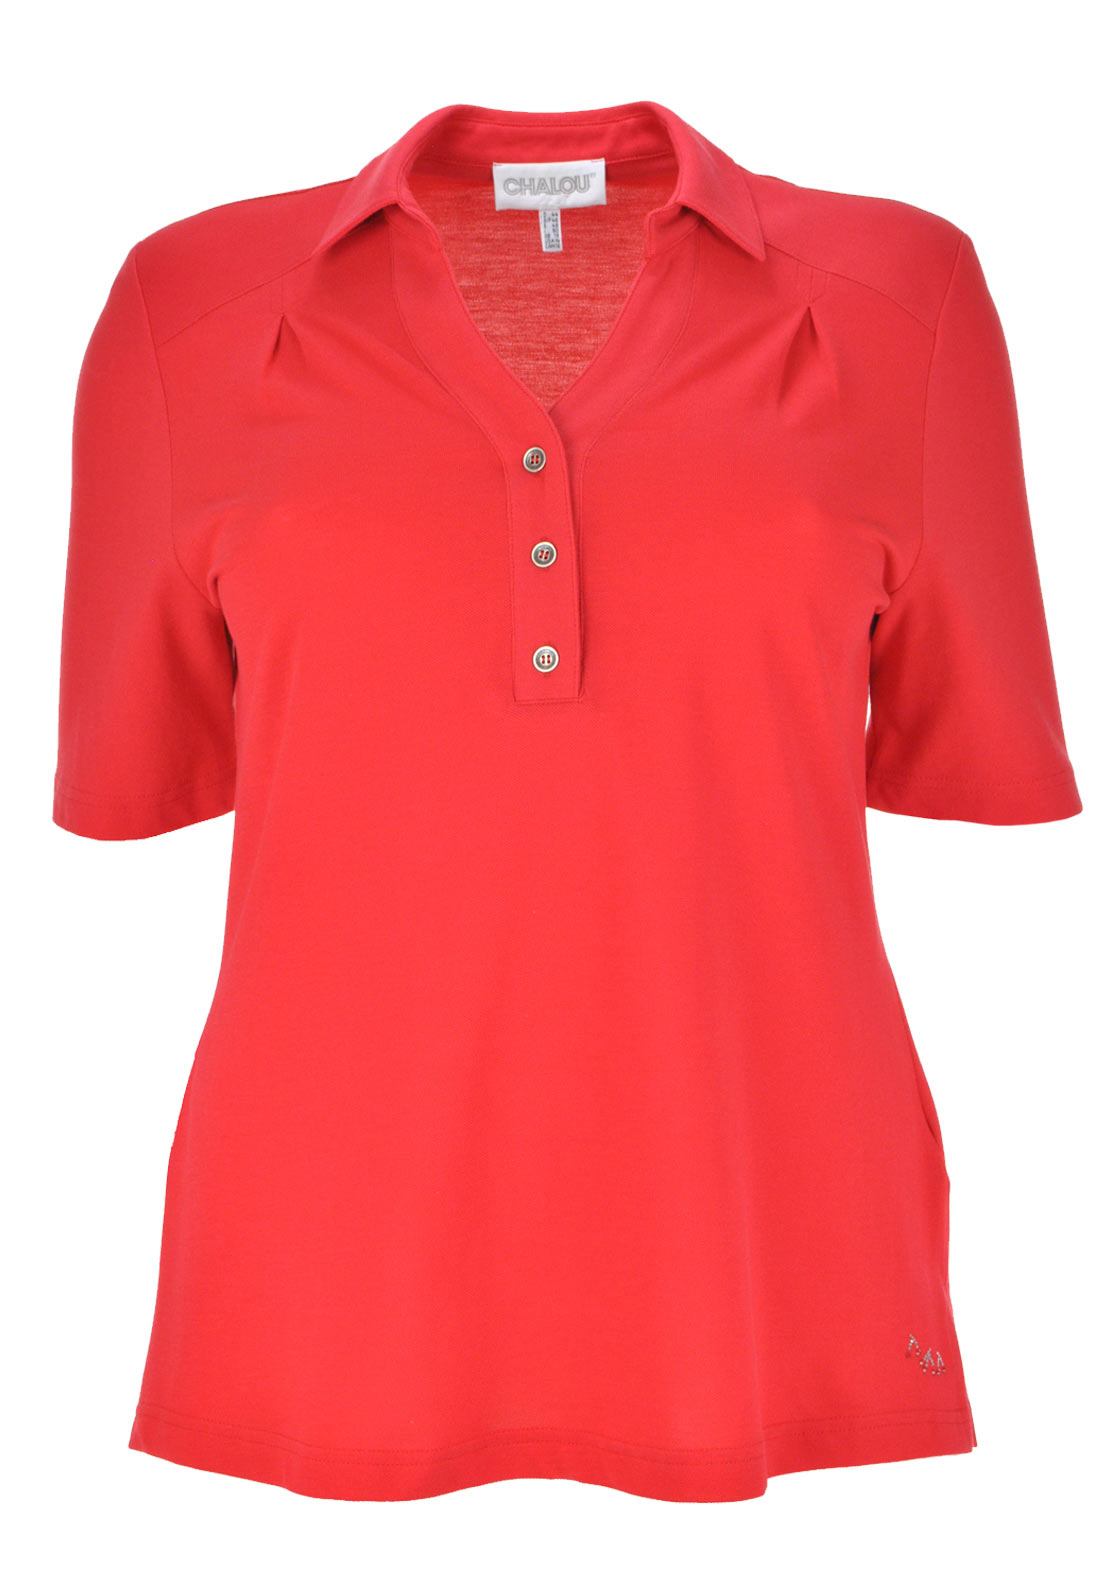 Chalou Short Sleeve Polo Shirt, Red